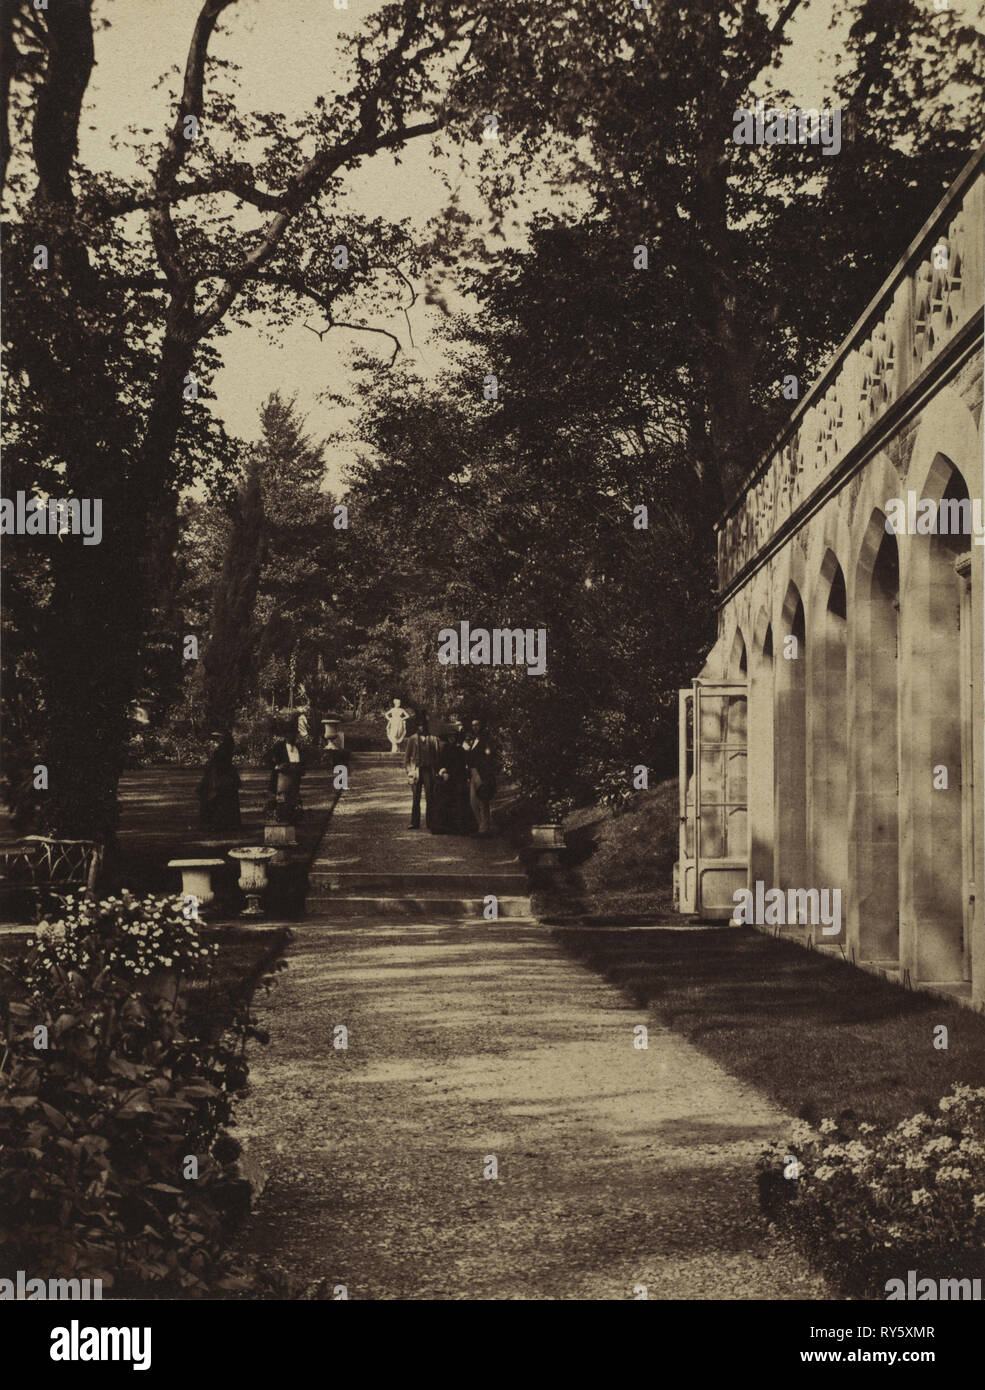 Photographic Album for the Year 1855, Being Contributions from the Members of the Photographic Club: Orangery and Flower Garden at Singleton, Glamorganshire, 1854. W. Graham Vivian (British, 1827-1912), Photographic Exchange Club. Albumen print from wet collodion negative; image: 19.5 x 14.8 cm (7 11/16 x 5 13/16 in.); matted: 45.7 x 35.6 cm (18 x 14 in - Stock Image